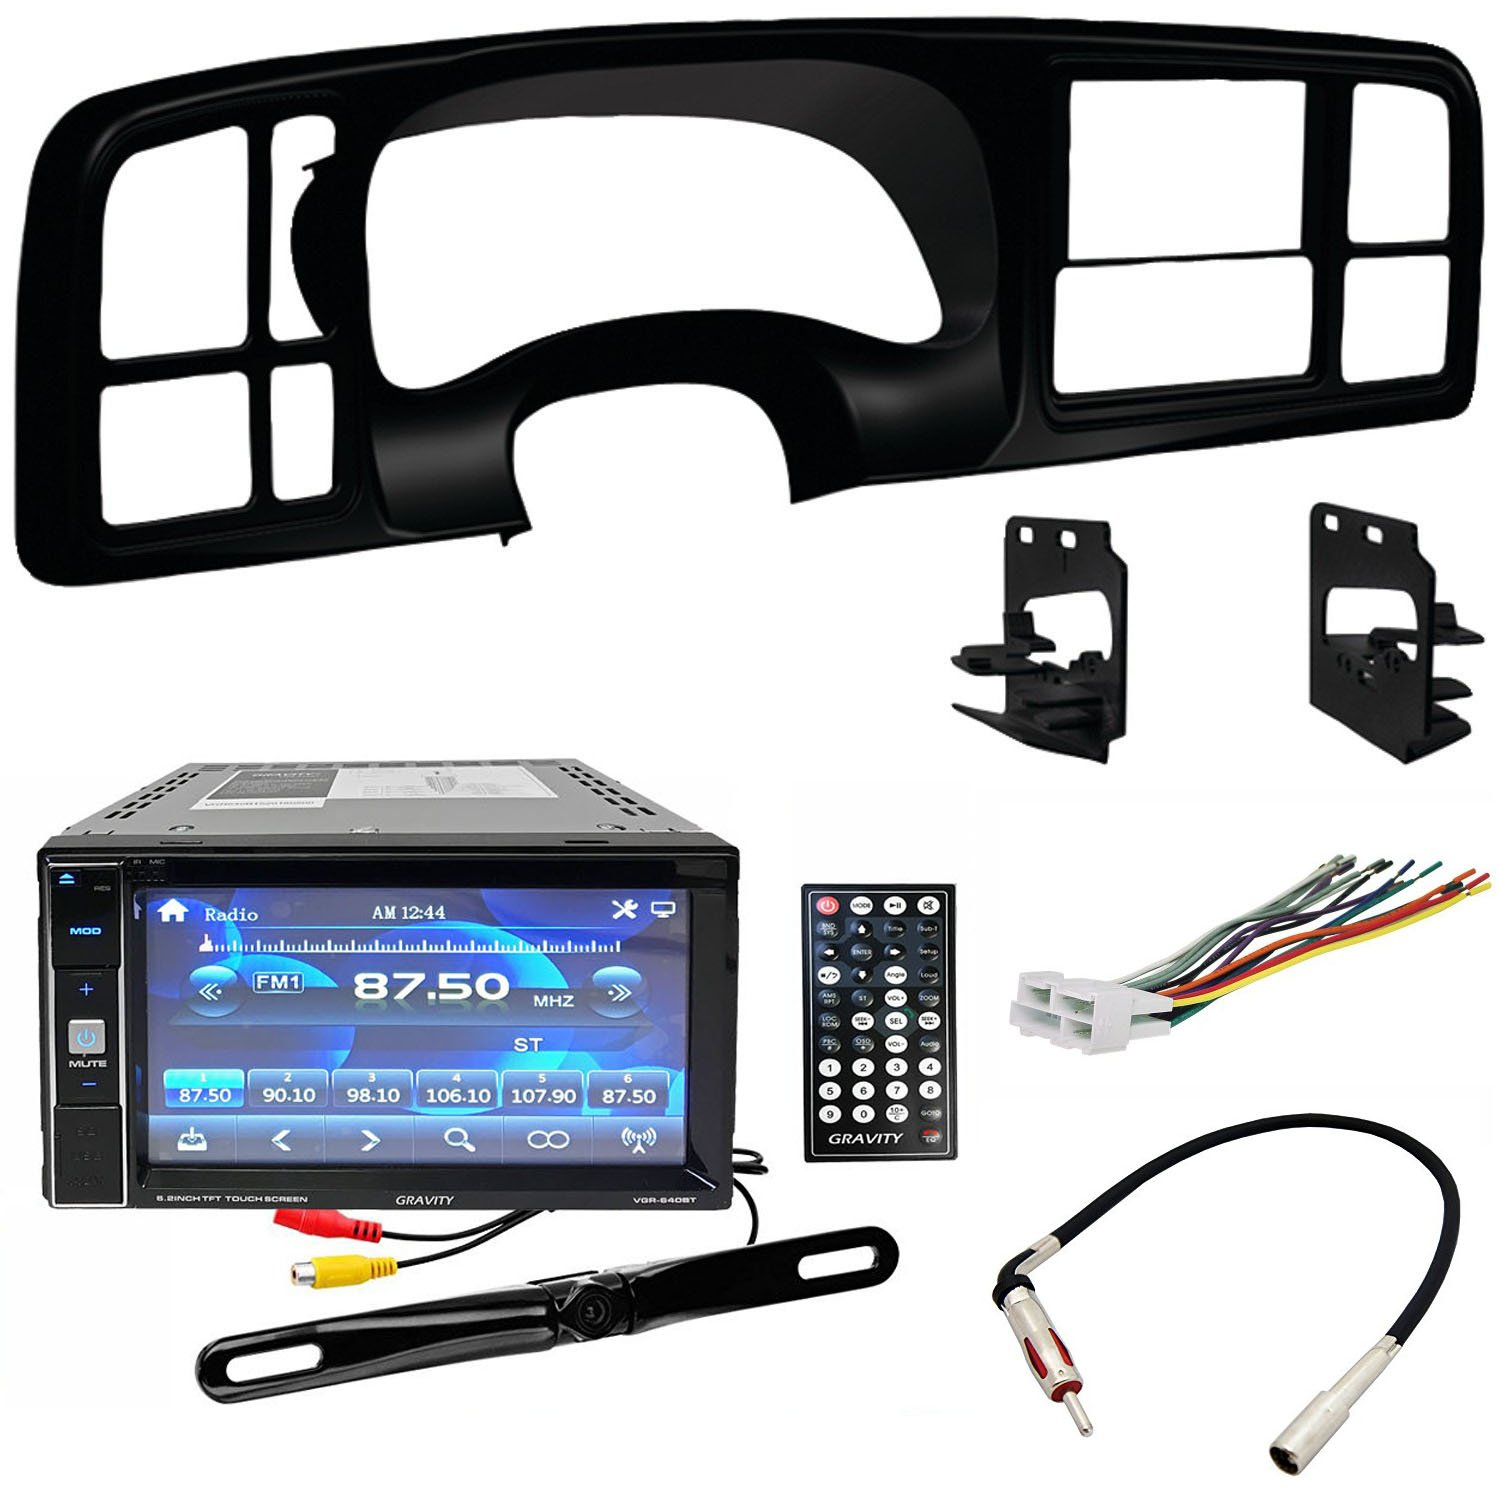 Double DIN DVD Includes Dash Kit - Wiring Harness - Radio Antenna Adapter for 1999 - 2002 GM Full-Size Trucks/SUV's